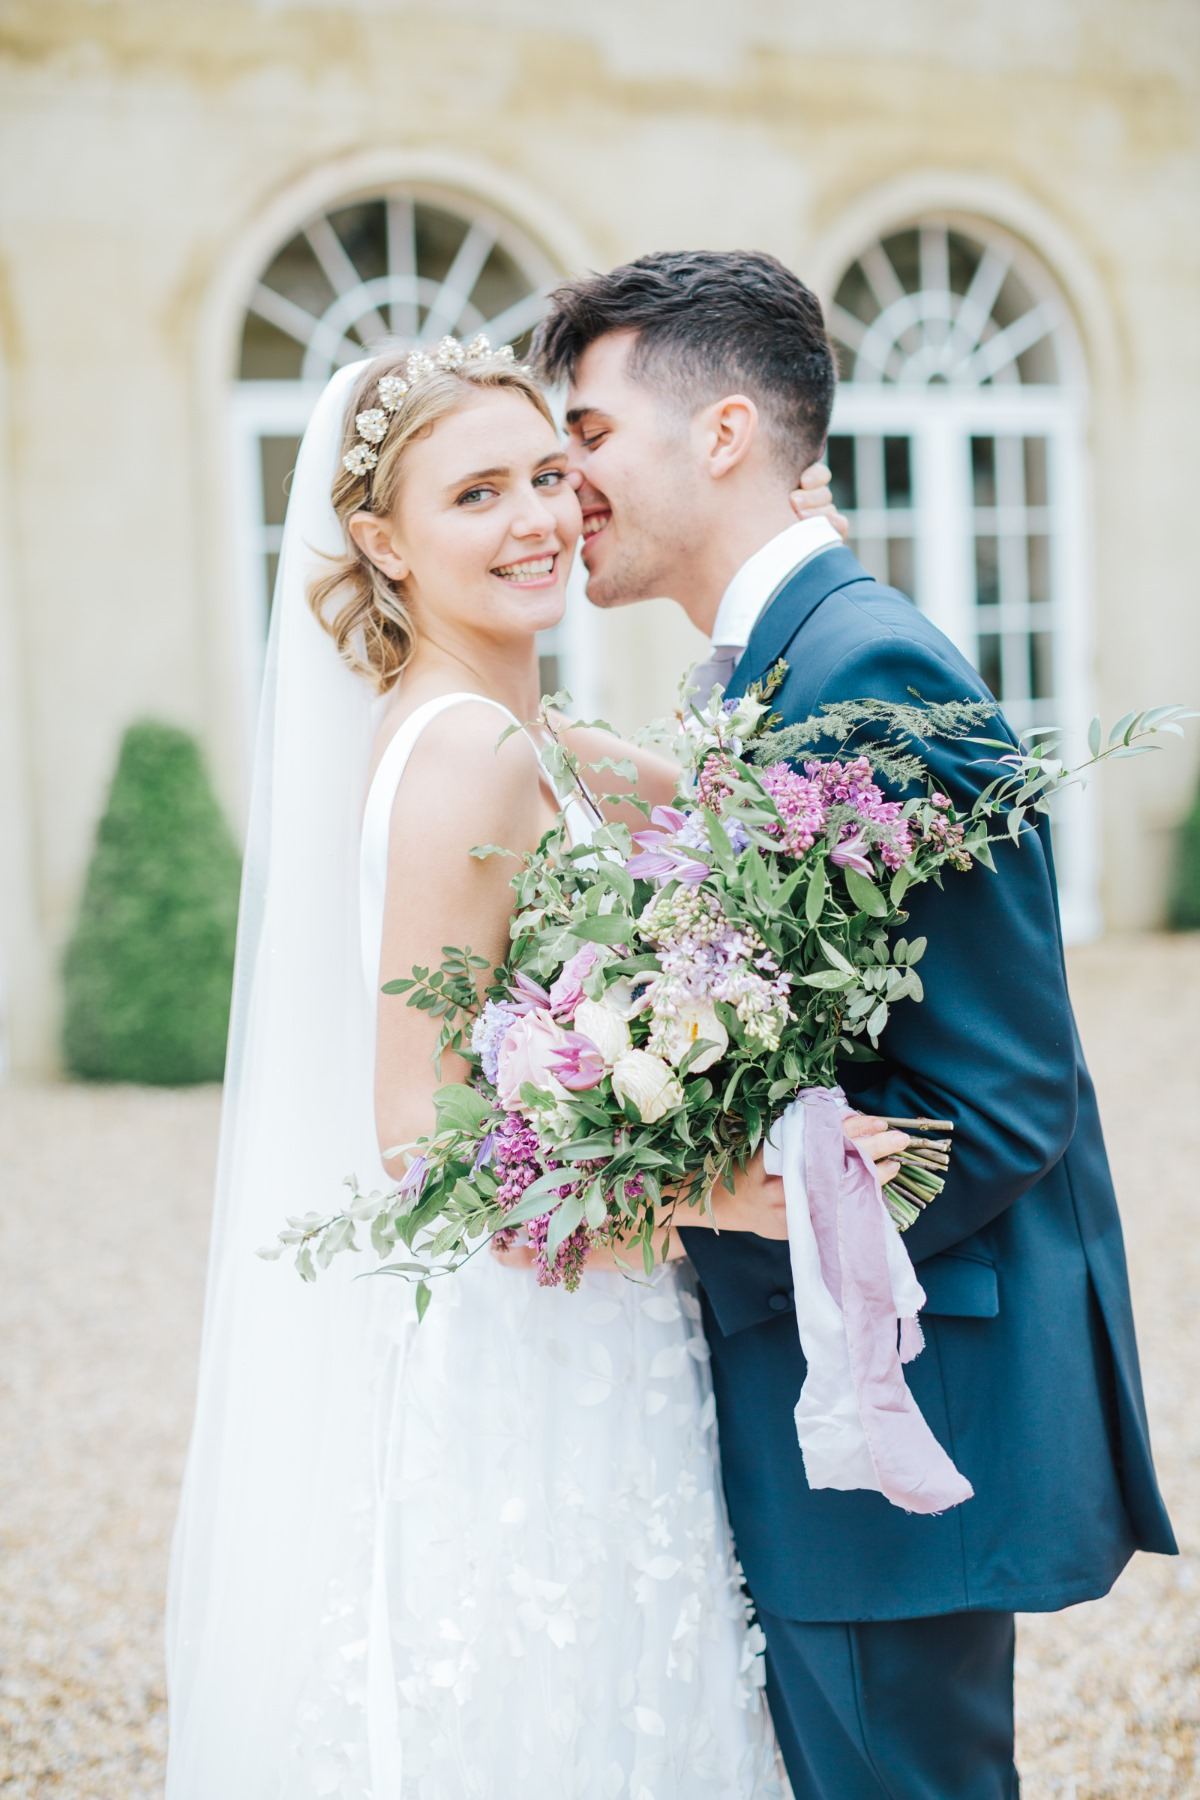 Northbrook Park - UK wedding venue